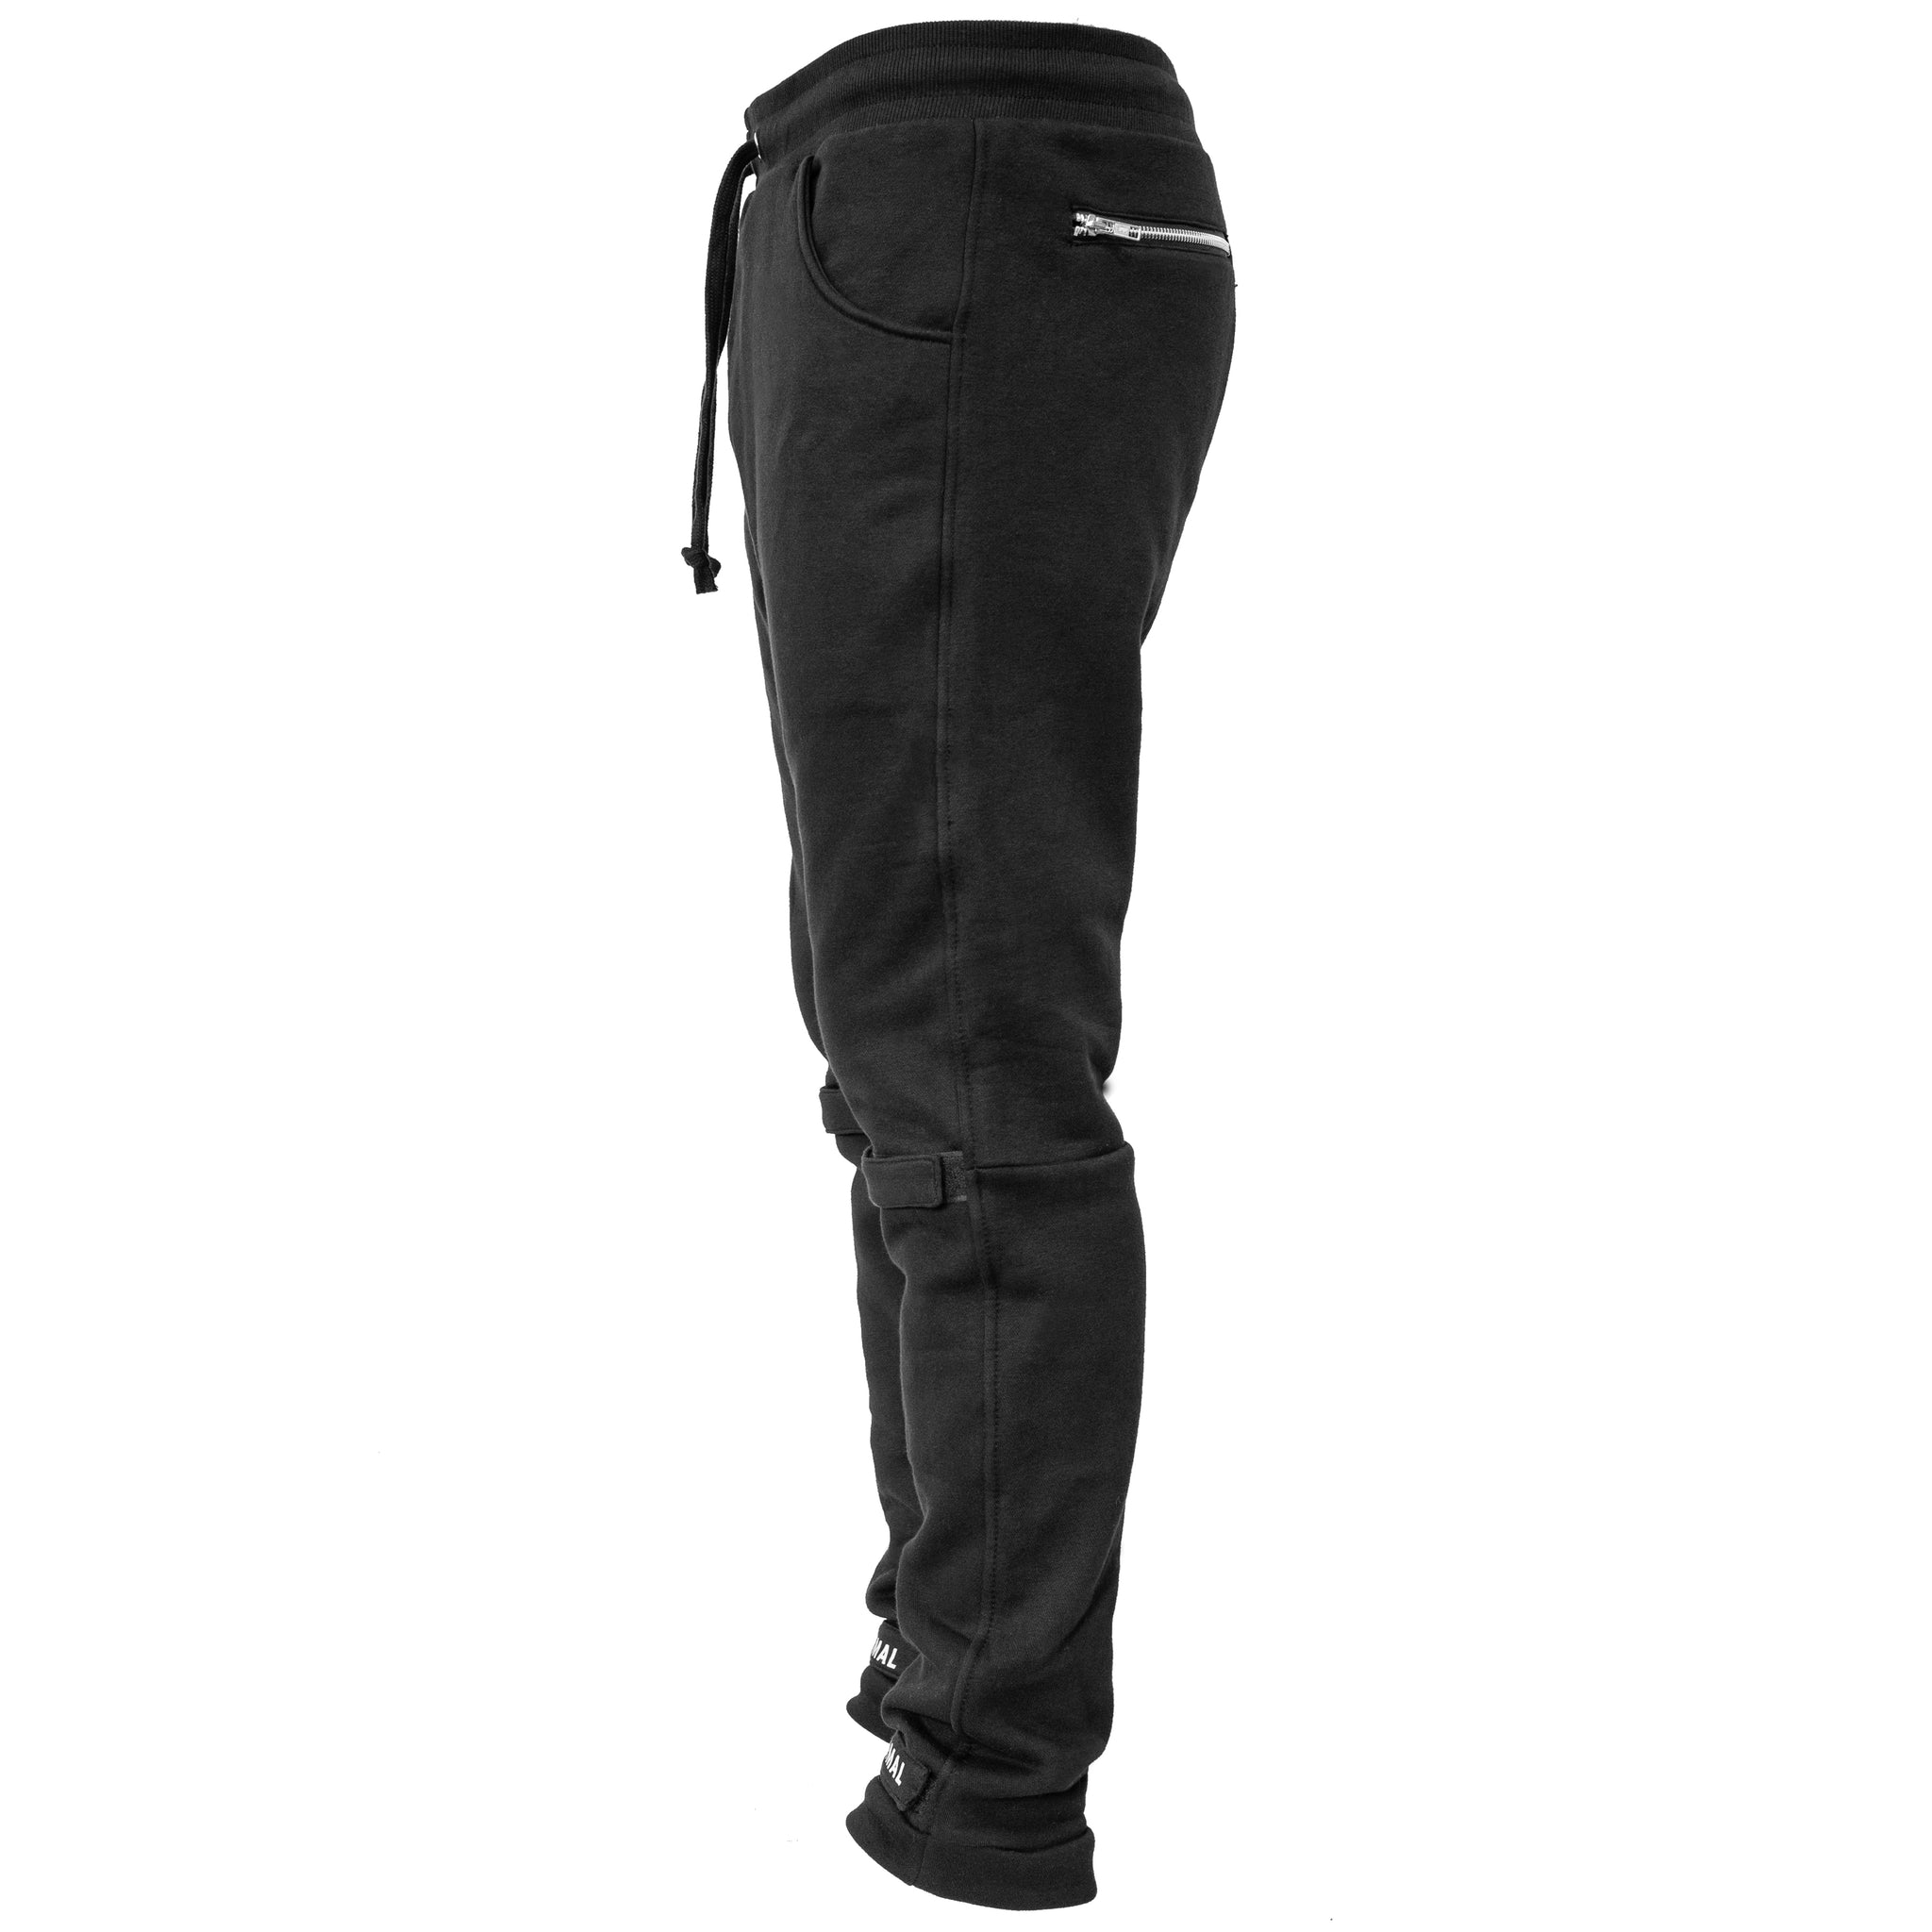 Streuth Sweatpants : Black